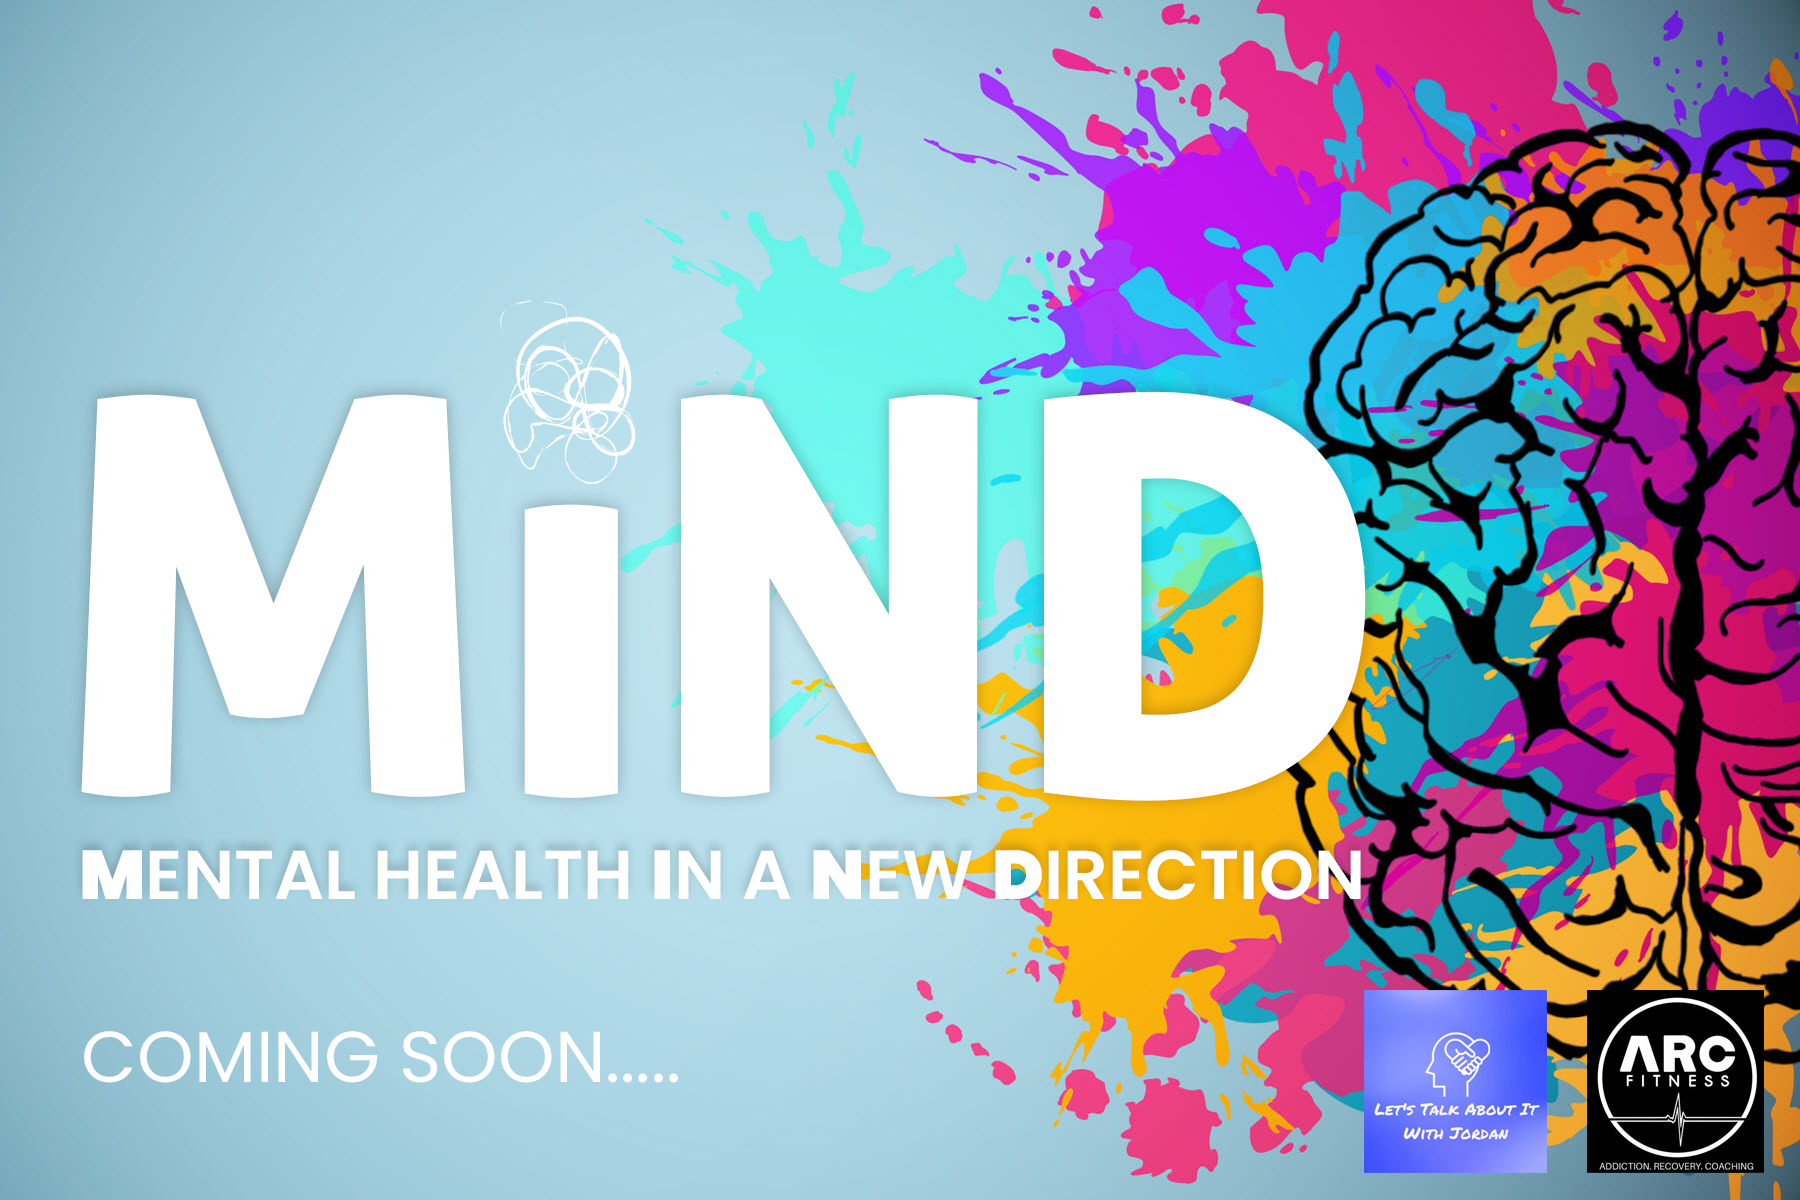 Mental-health In a New Direction